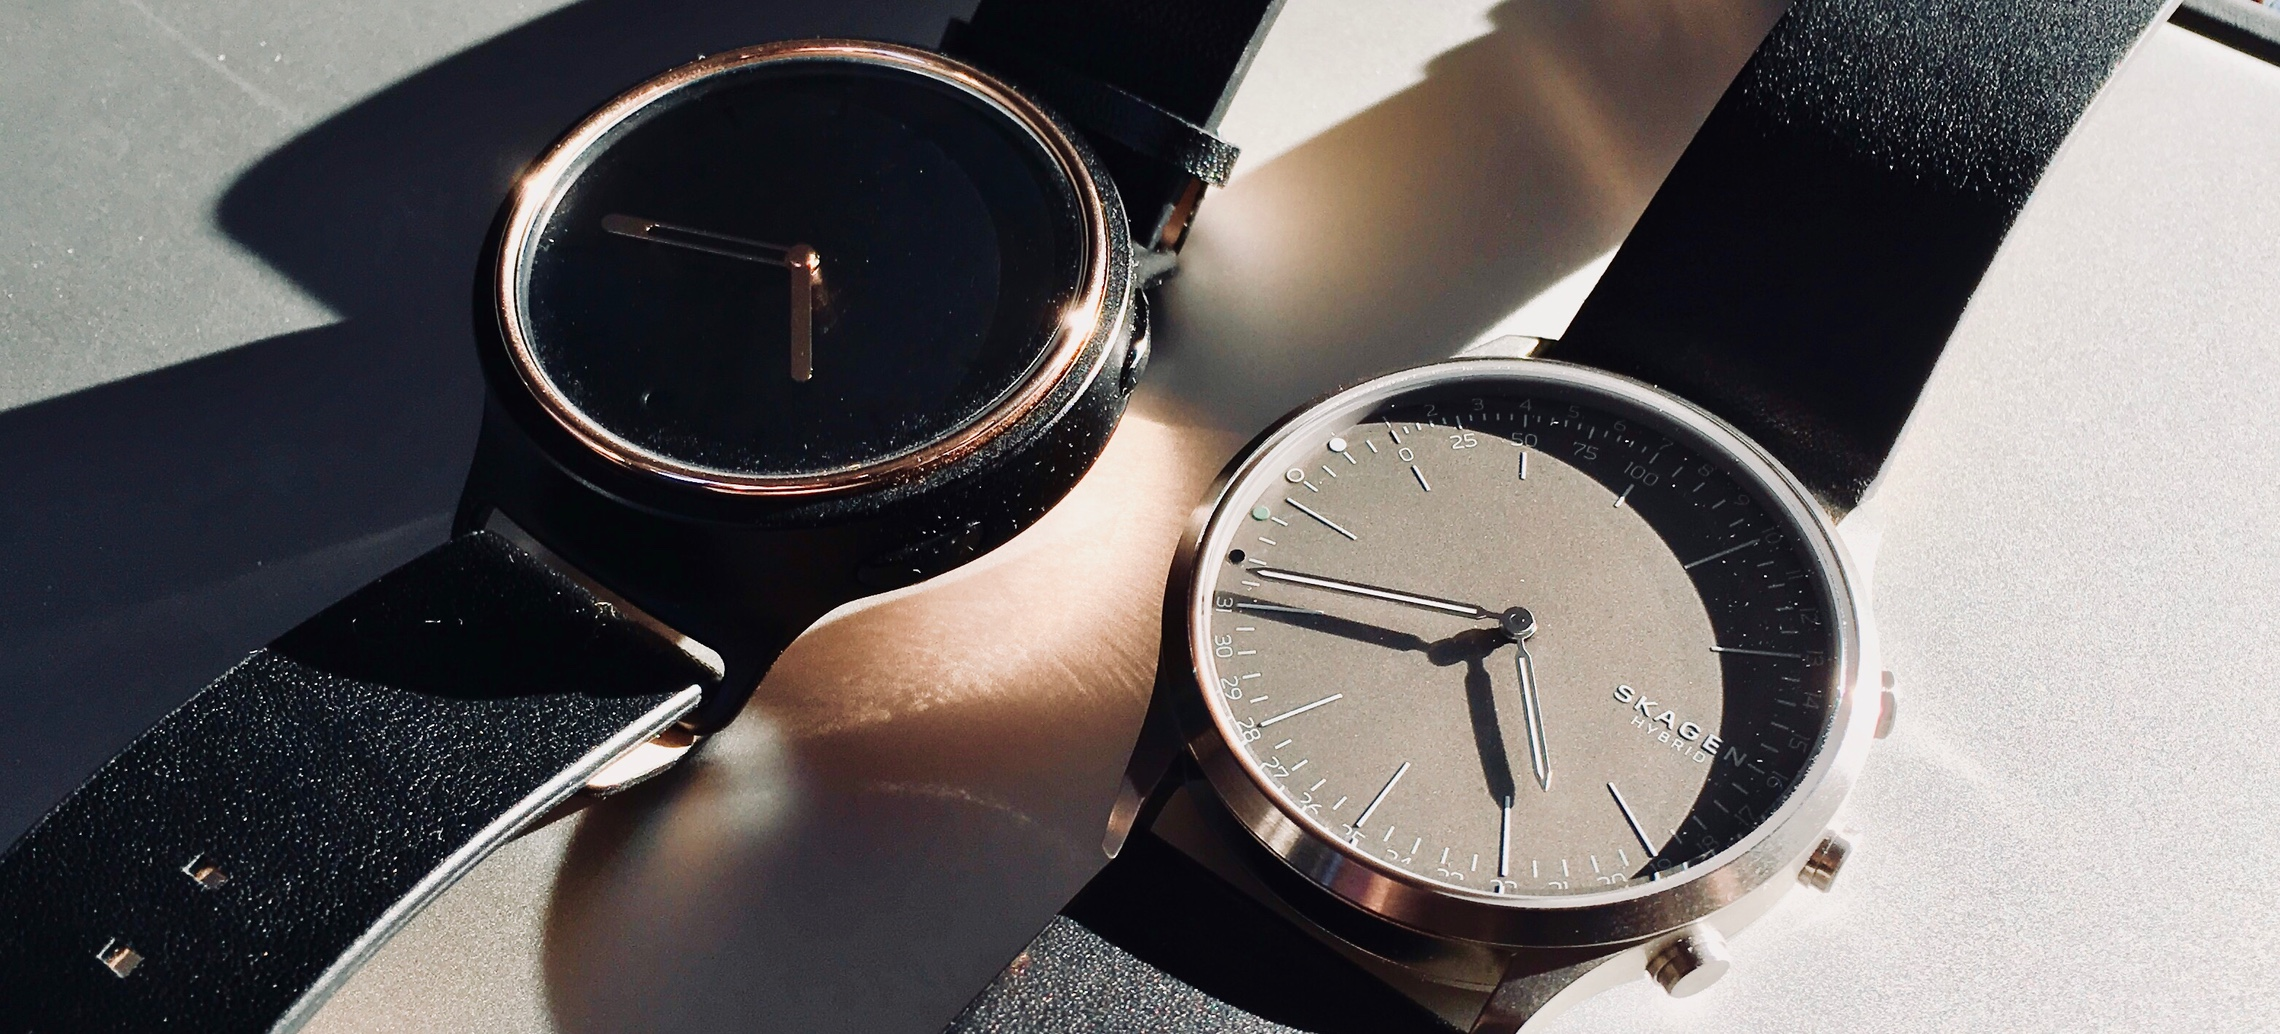 Skagen Jorn Connected and Misfit Phase